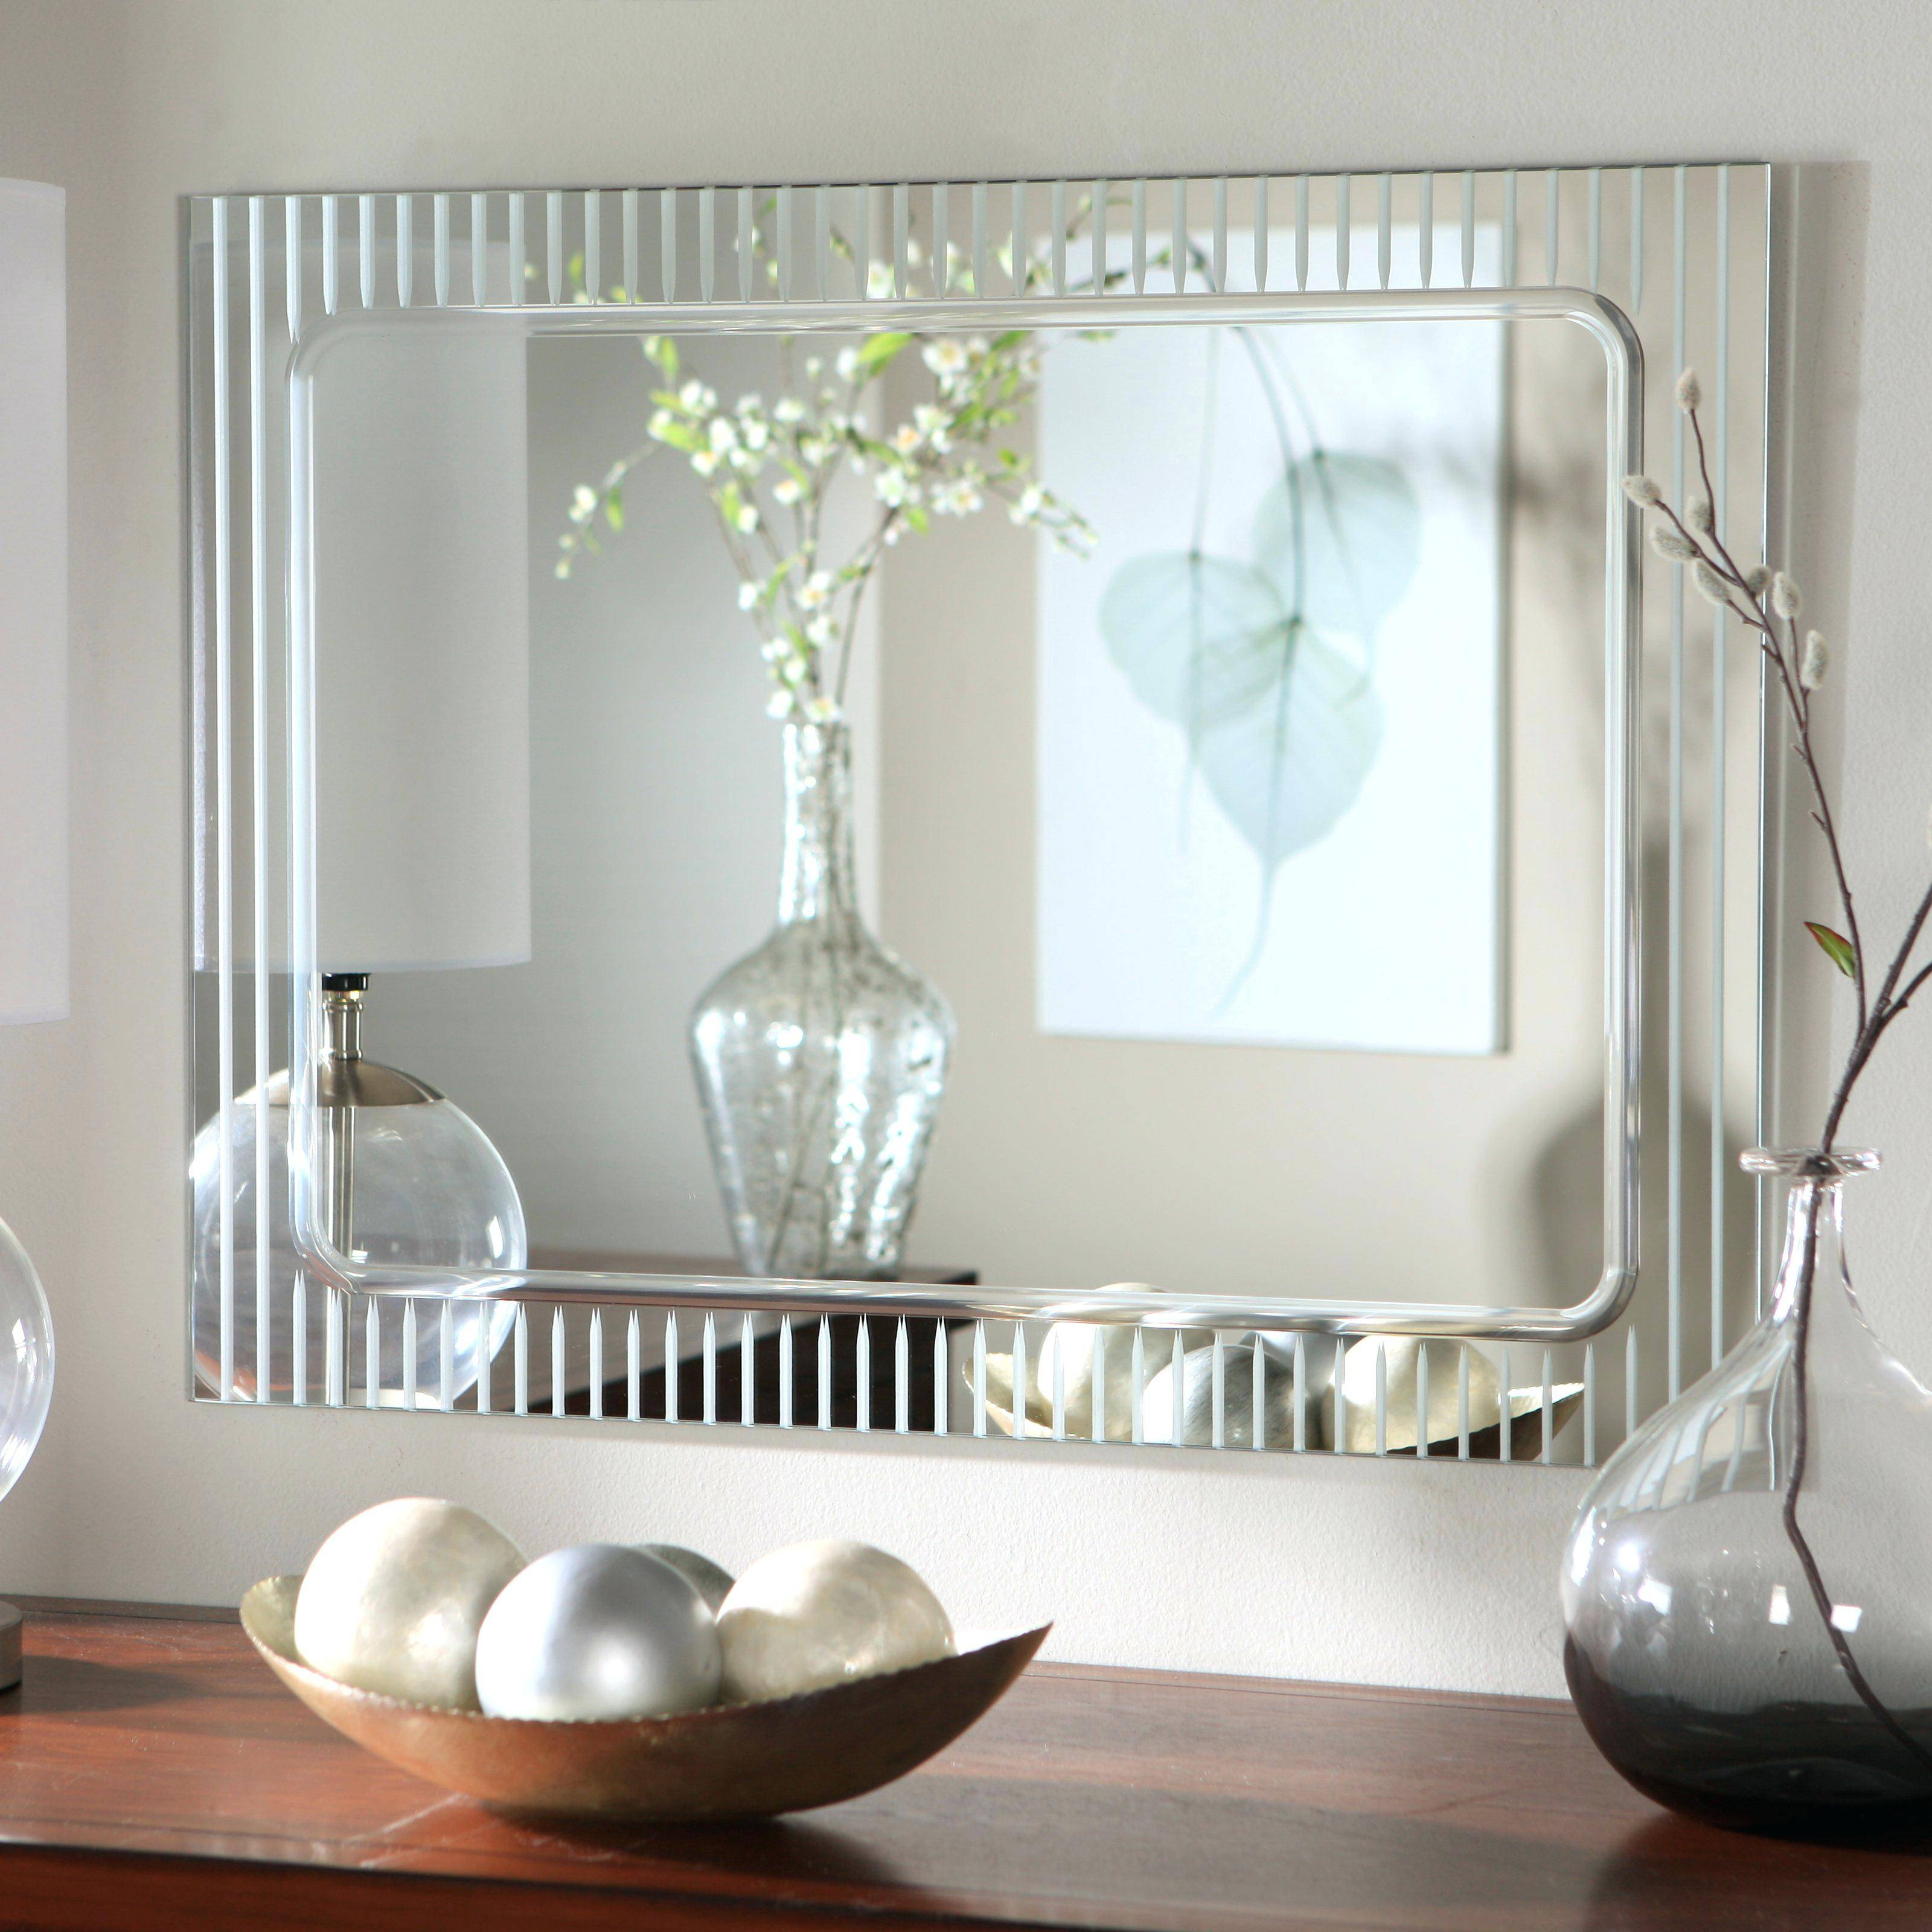 Wall Mirrors A Hotel Bathroom Mirror Floor Mirrorlarge Decorative with regard to White Decorative Mirrors (Image 24 of 25)